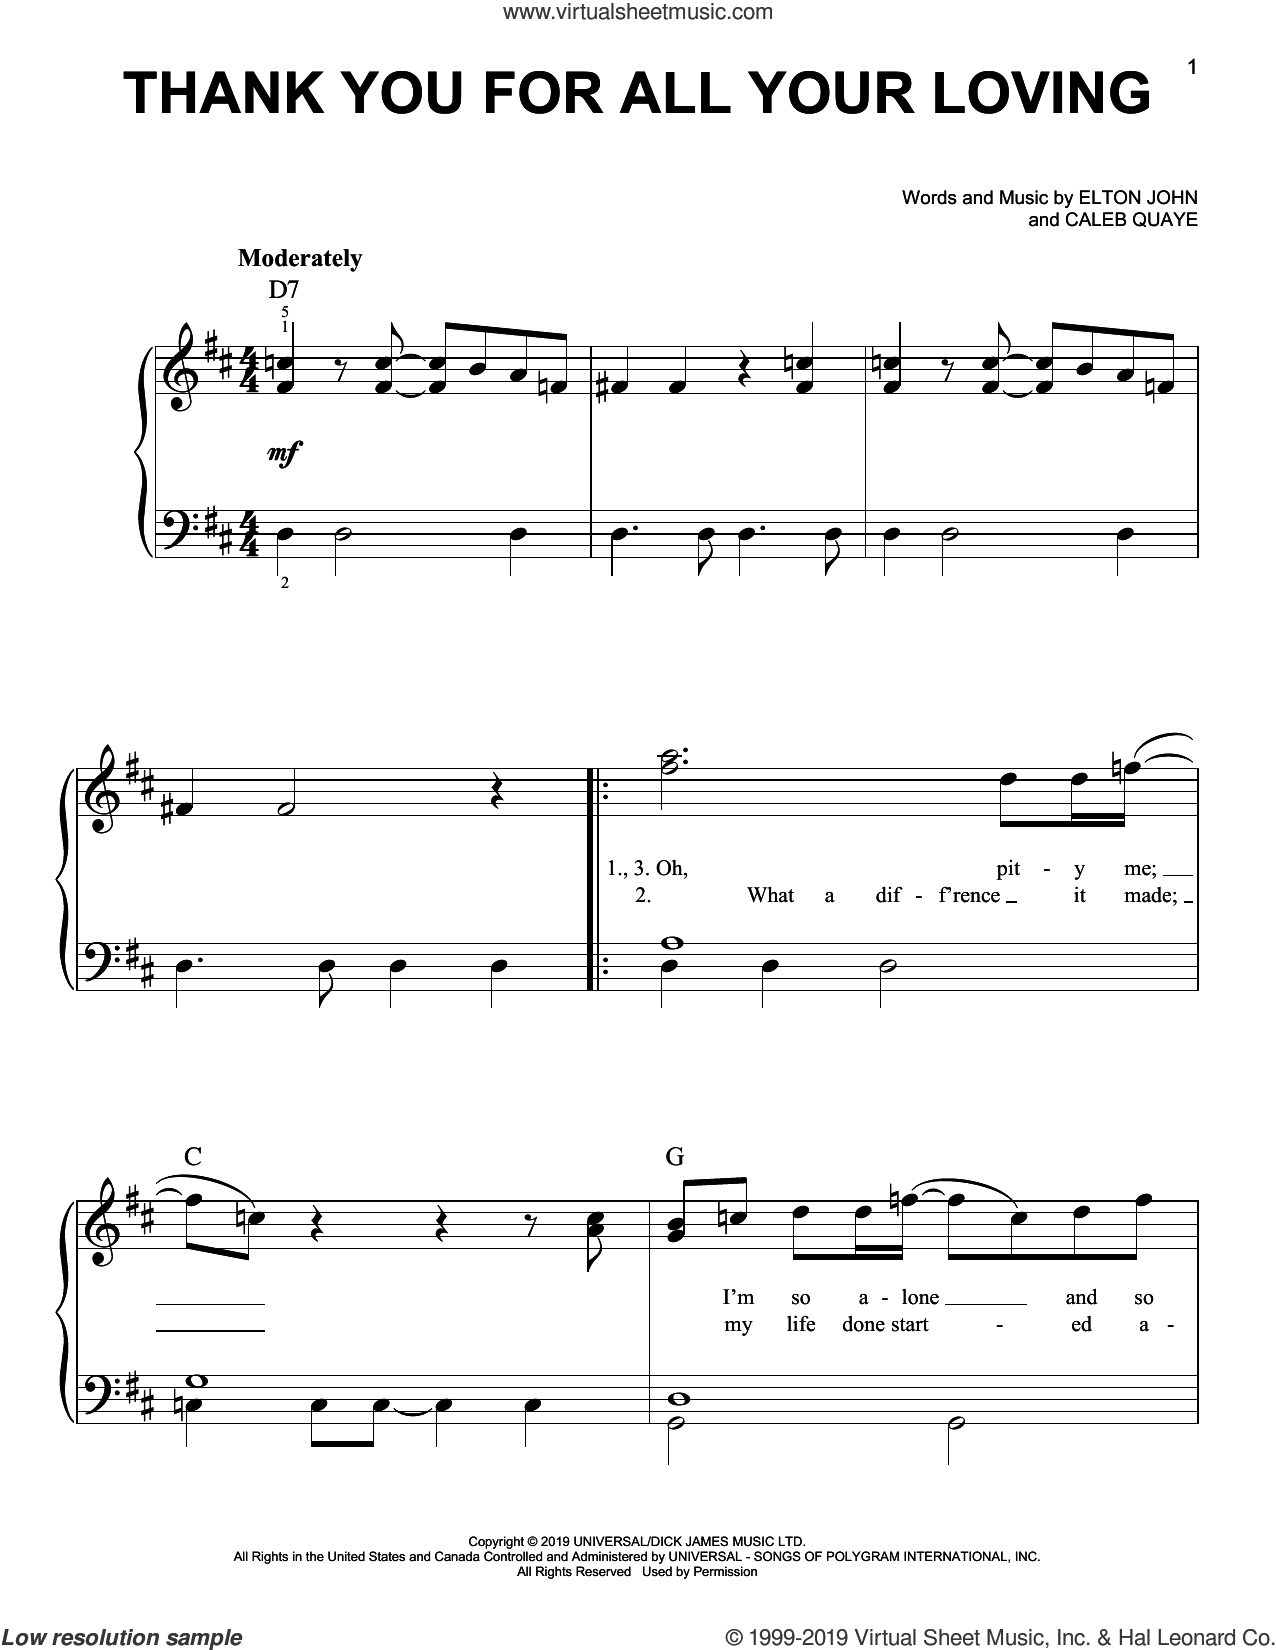 Thank You For All Your Loving (from Rocketman) sheet music for piano solo by Taron Egerton, Caleb Quaye and Elton John, easy skill level